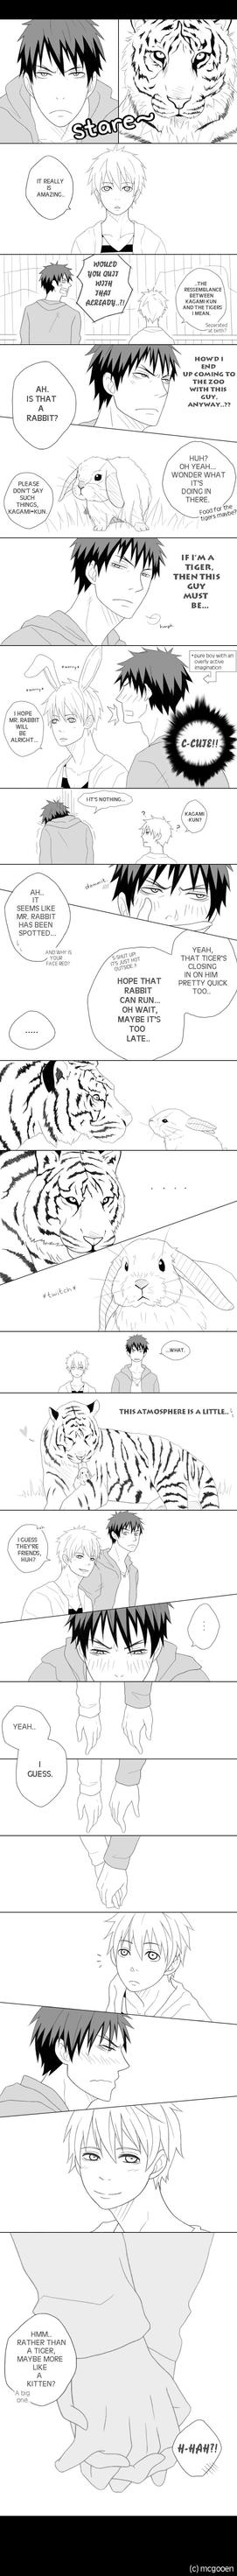 KnB - Tigers and Rabbits by Mcgooen